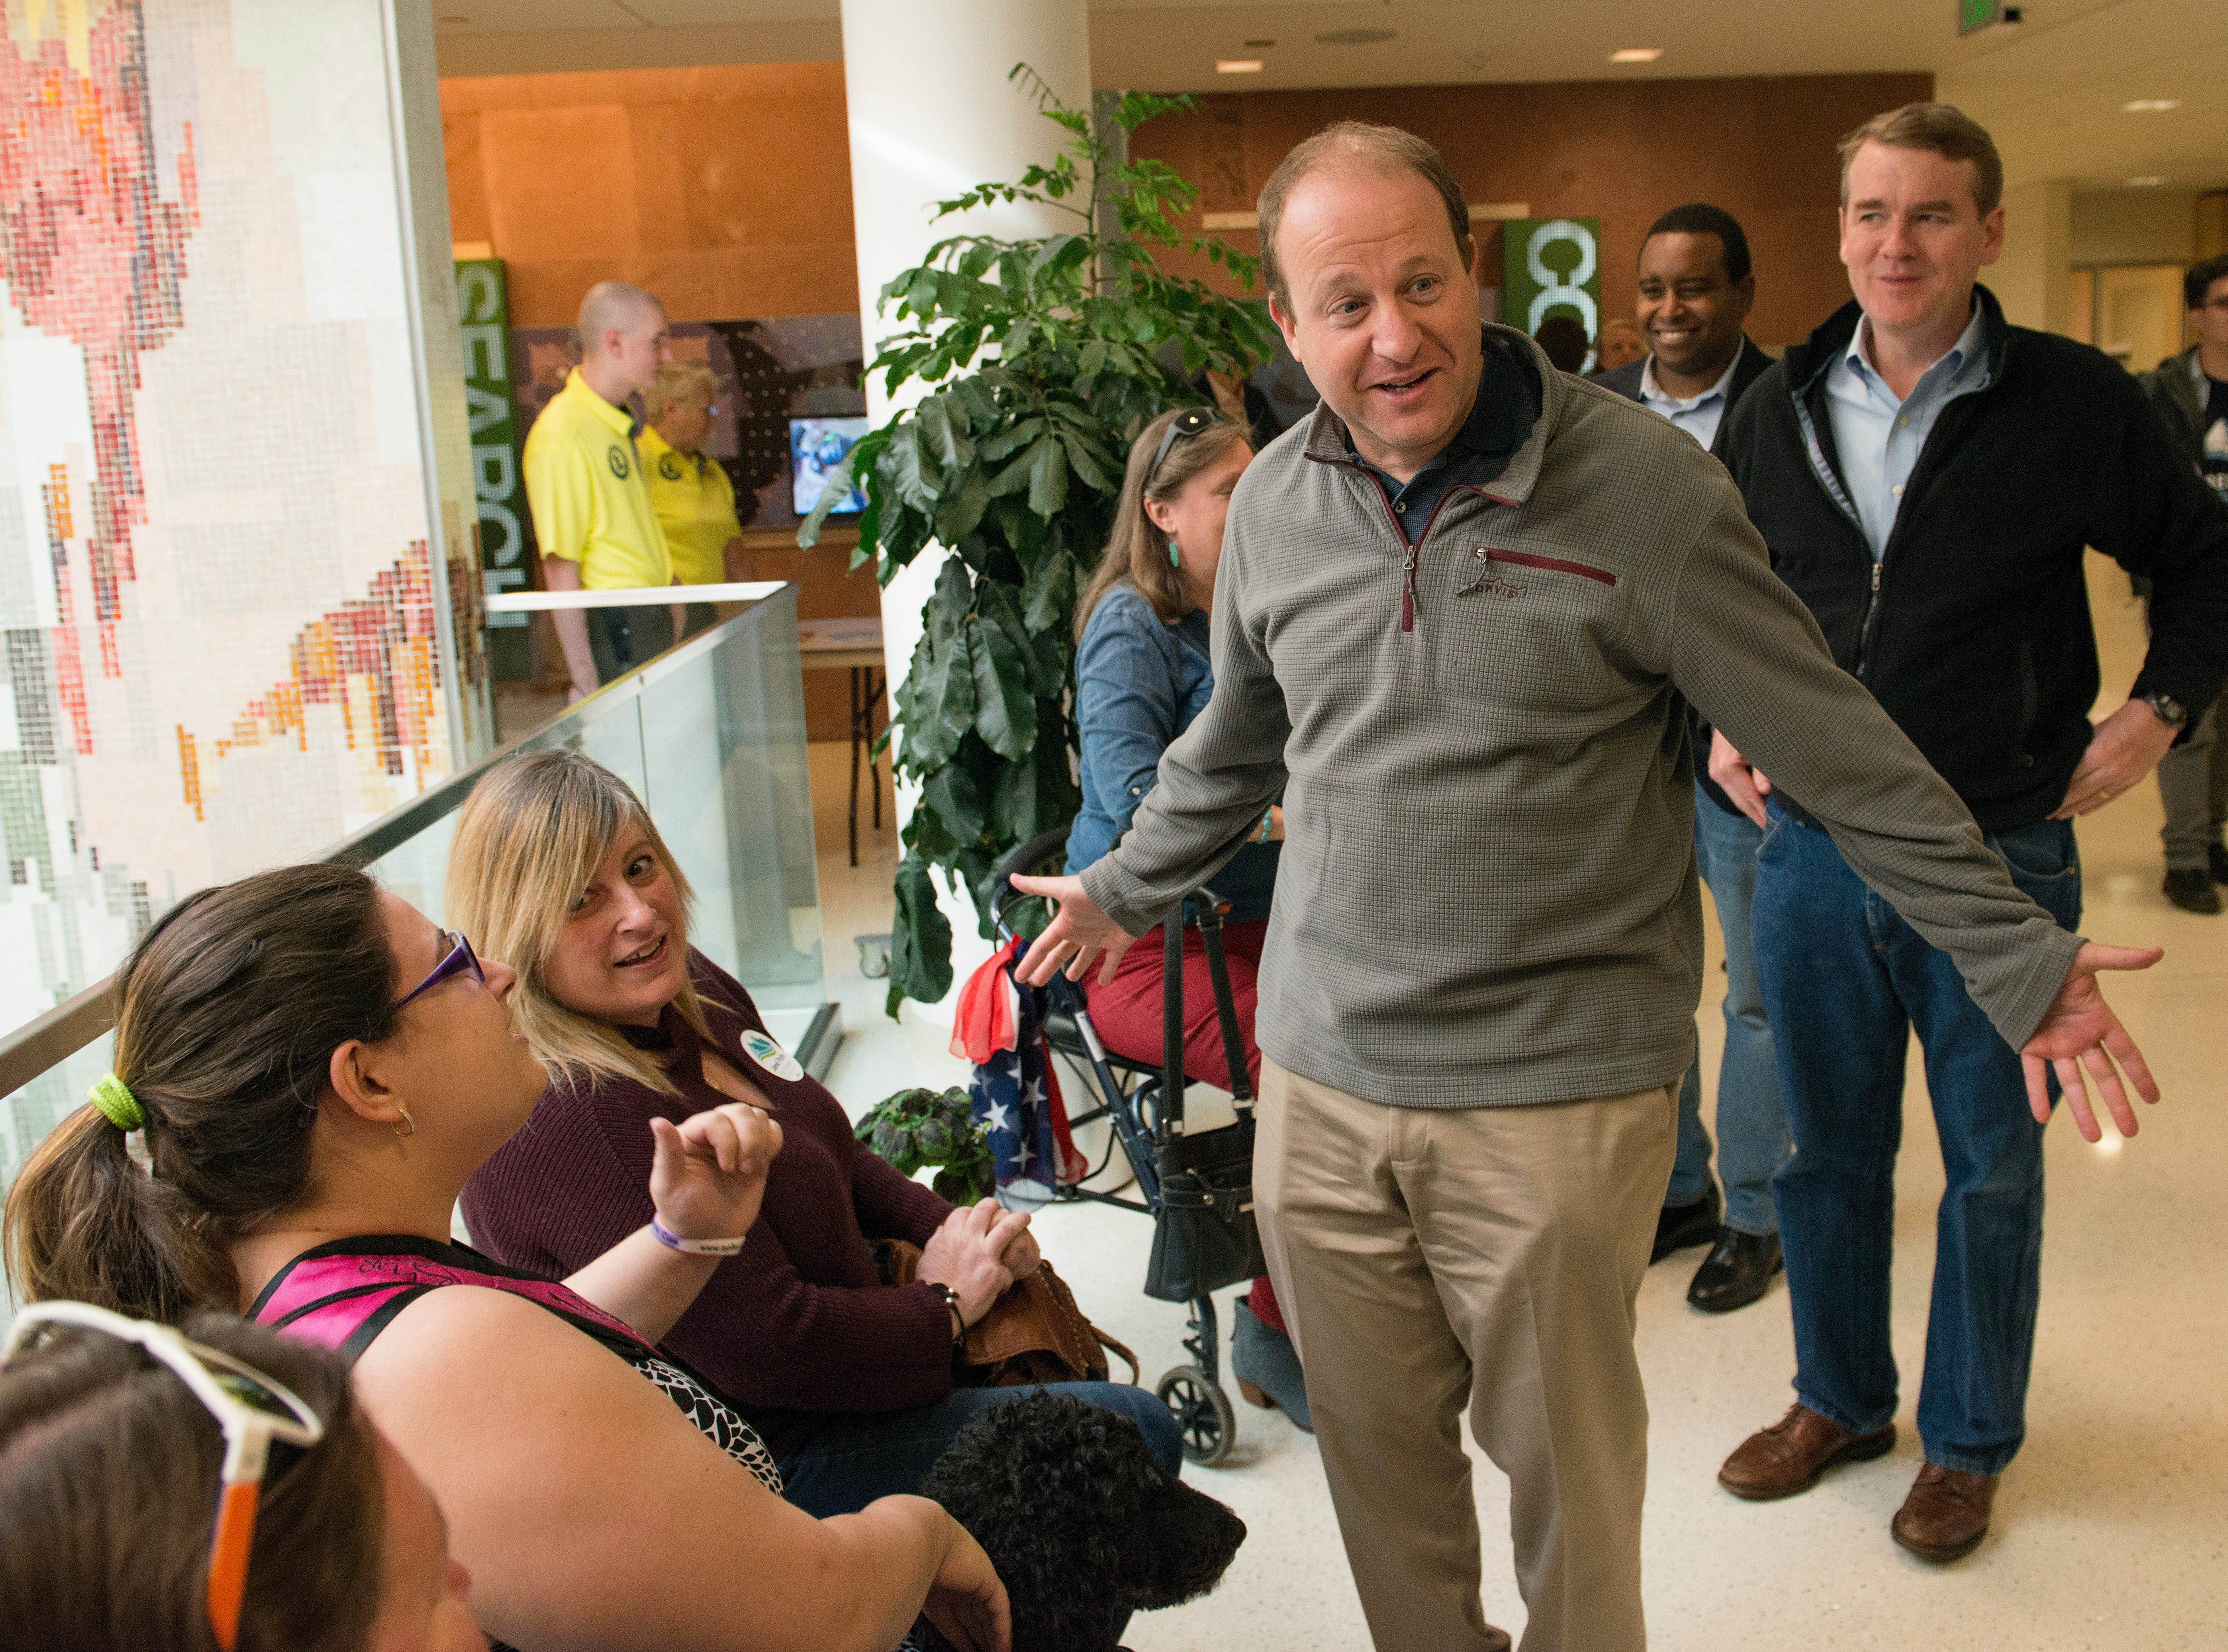 Democratic candidate for Colorado Governor greets supporters as he arrives at a Colorado Democrats rally with U.S. Sen. Michael Bennett and congressional candidate Joe Neguse at the Lory Student Center at CSU on Wednesday, October 24, 2018.